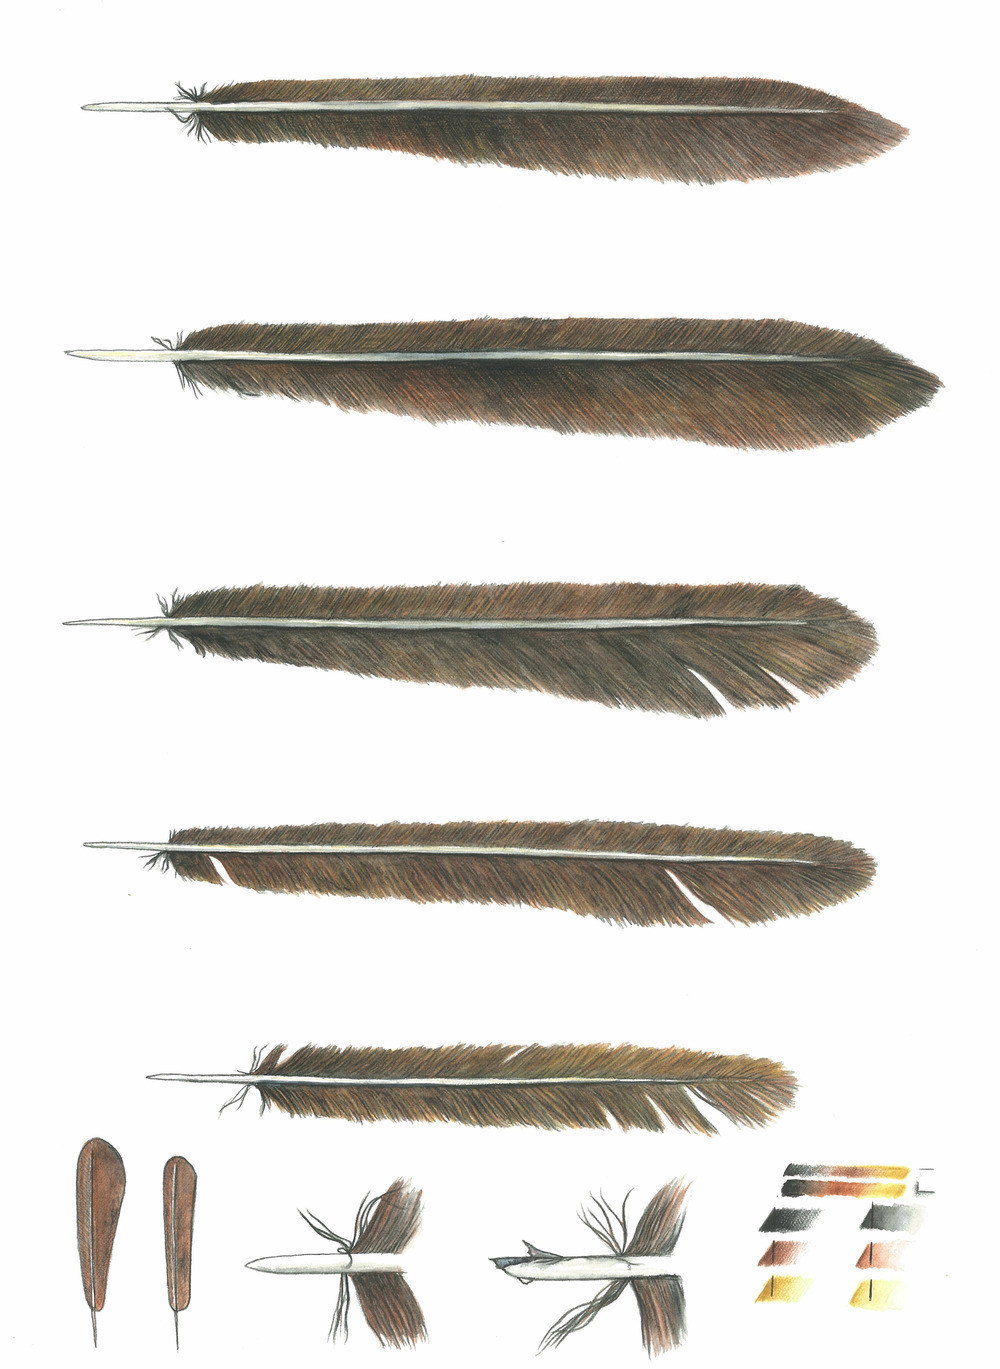 'Feather Studies #2'